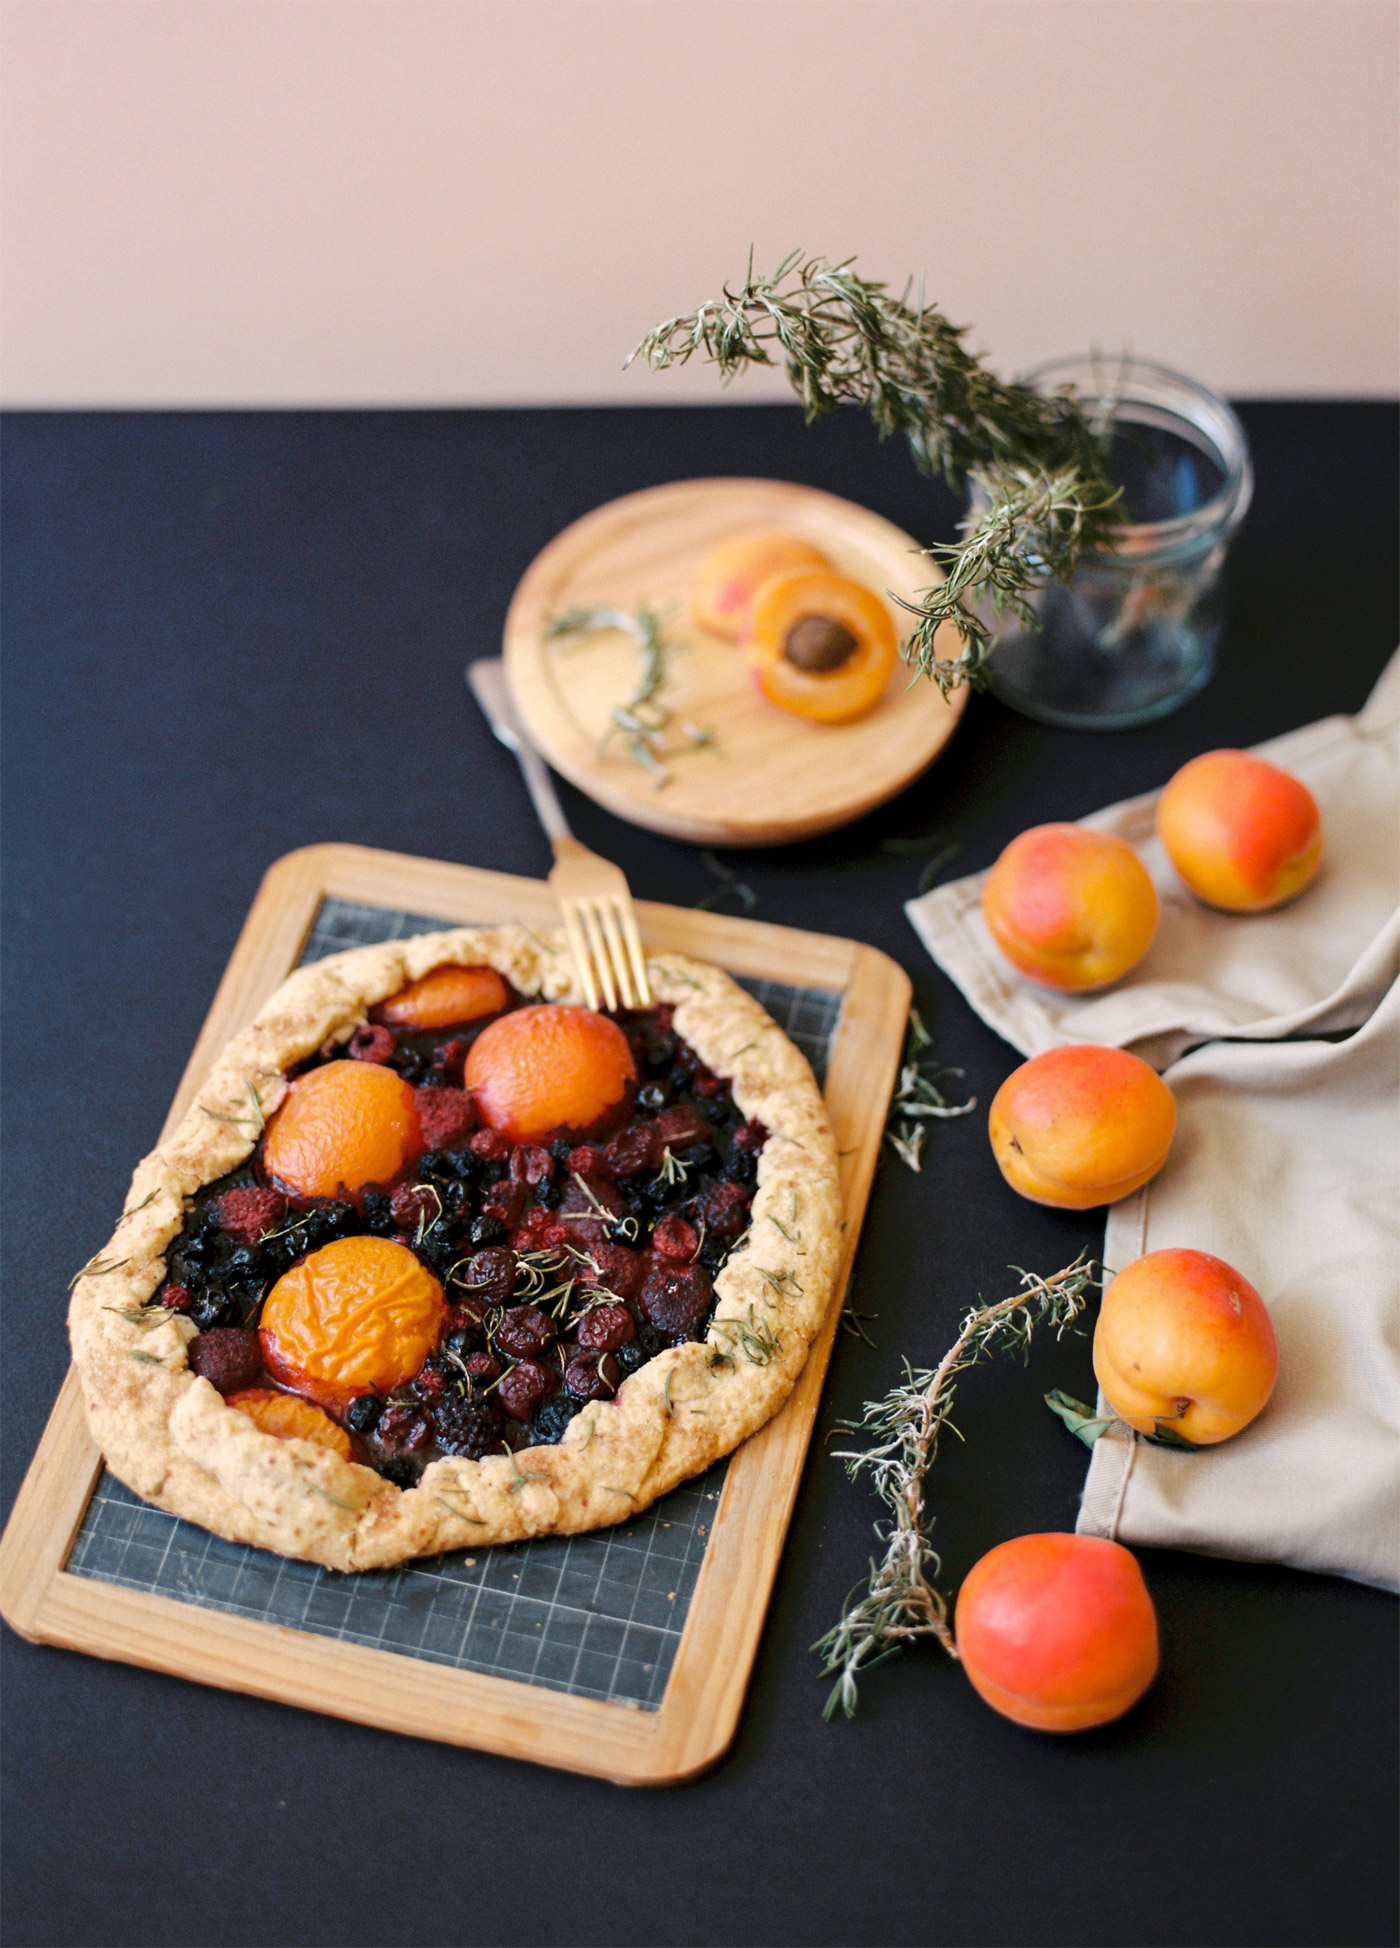 Blanccoco_Rustic_pie_styliste_photographe_culinaire-26